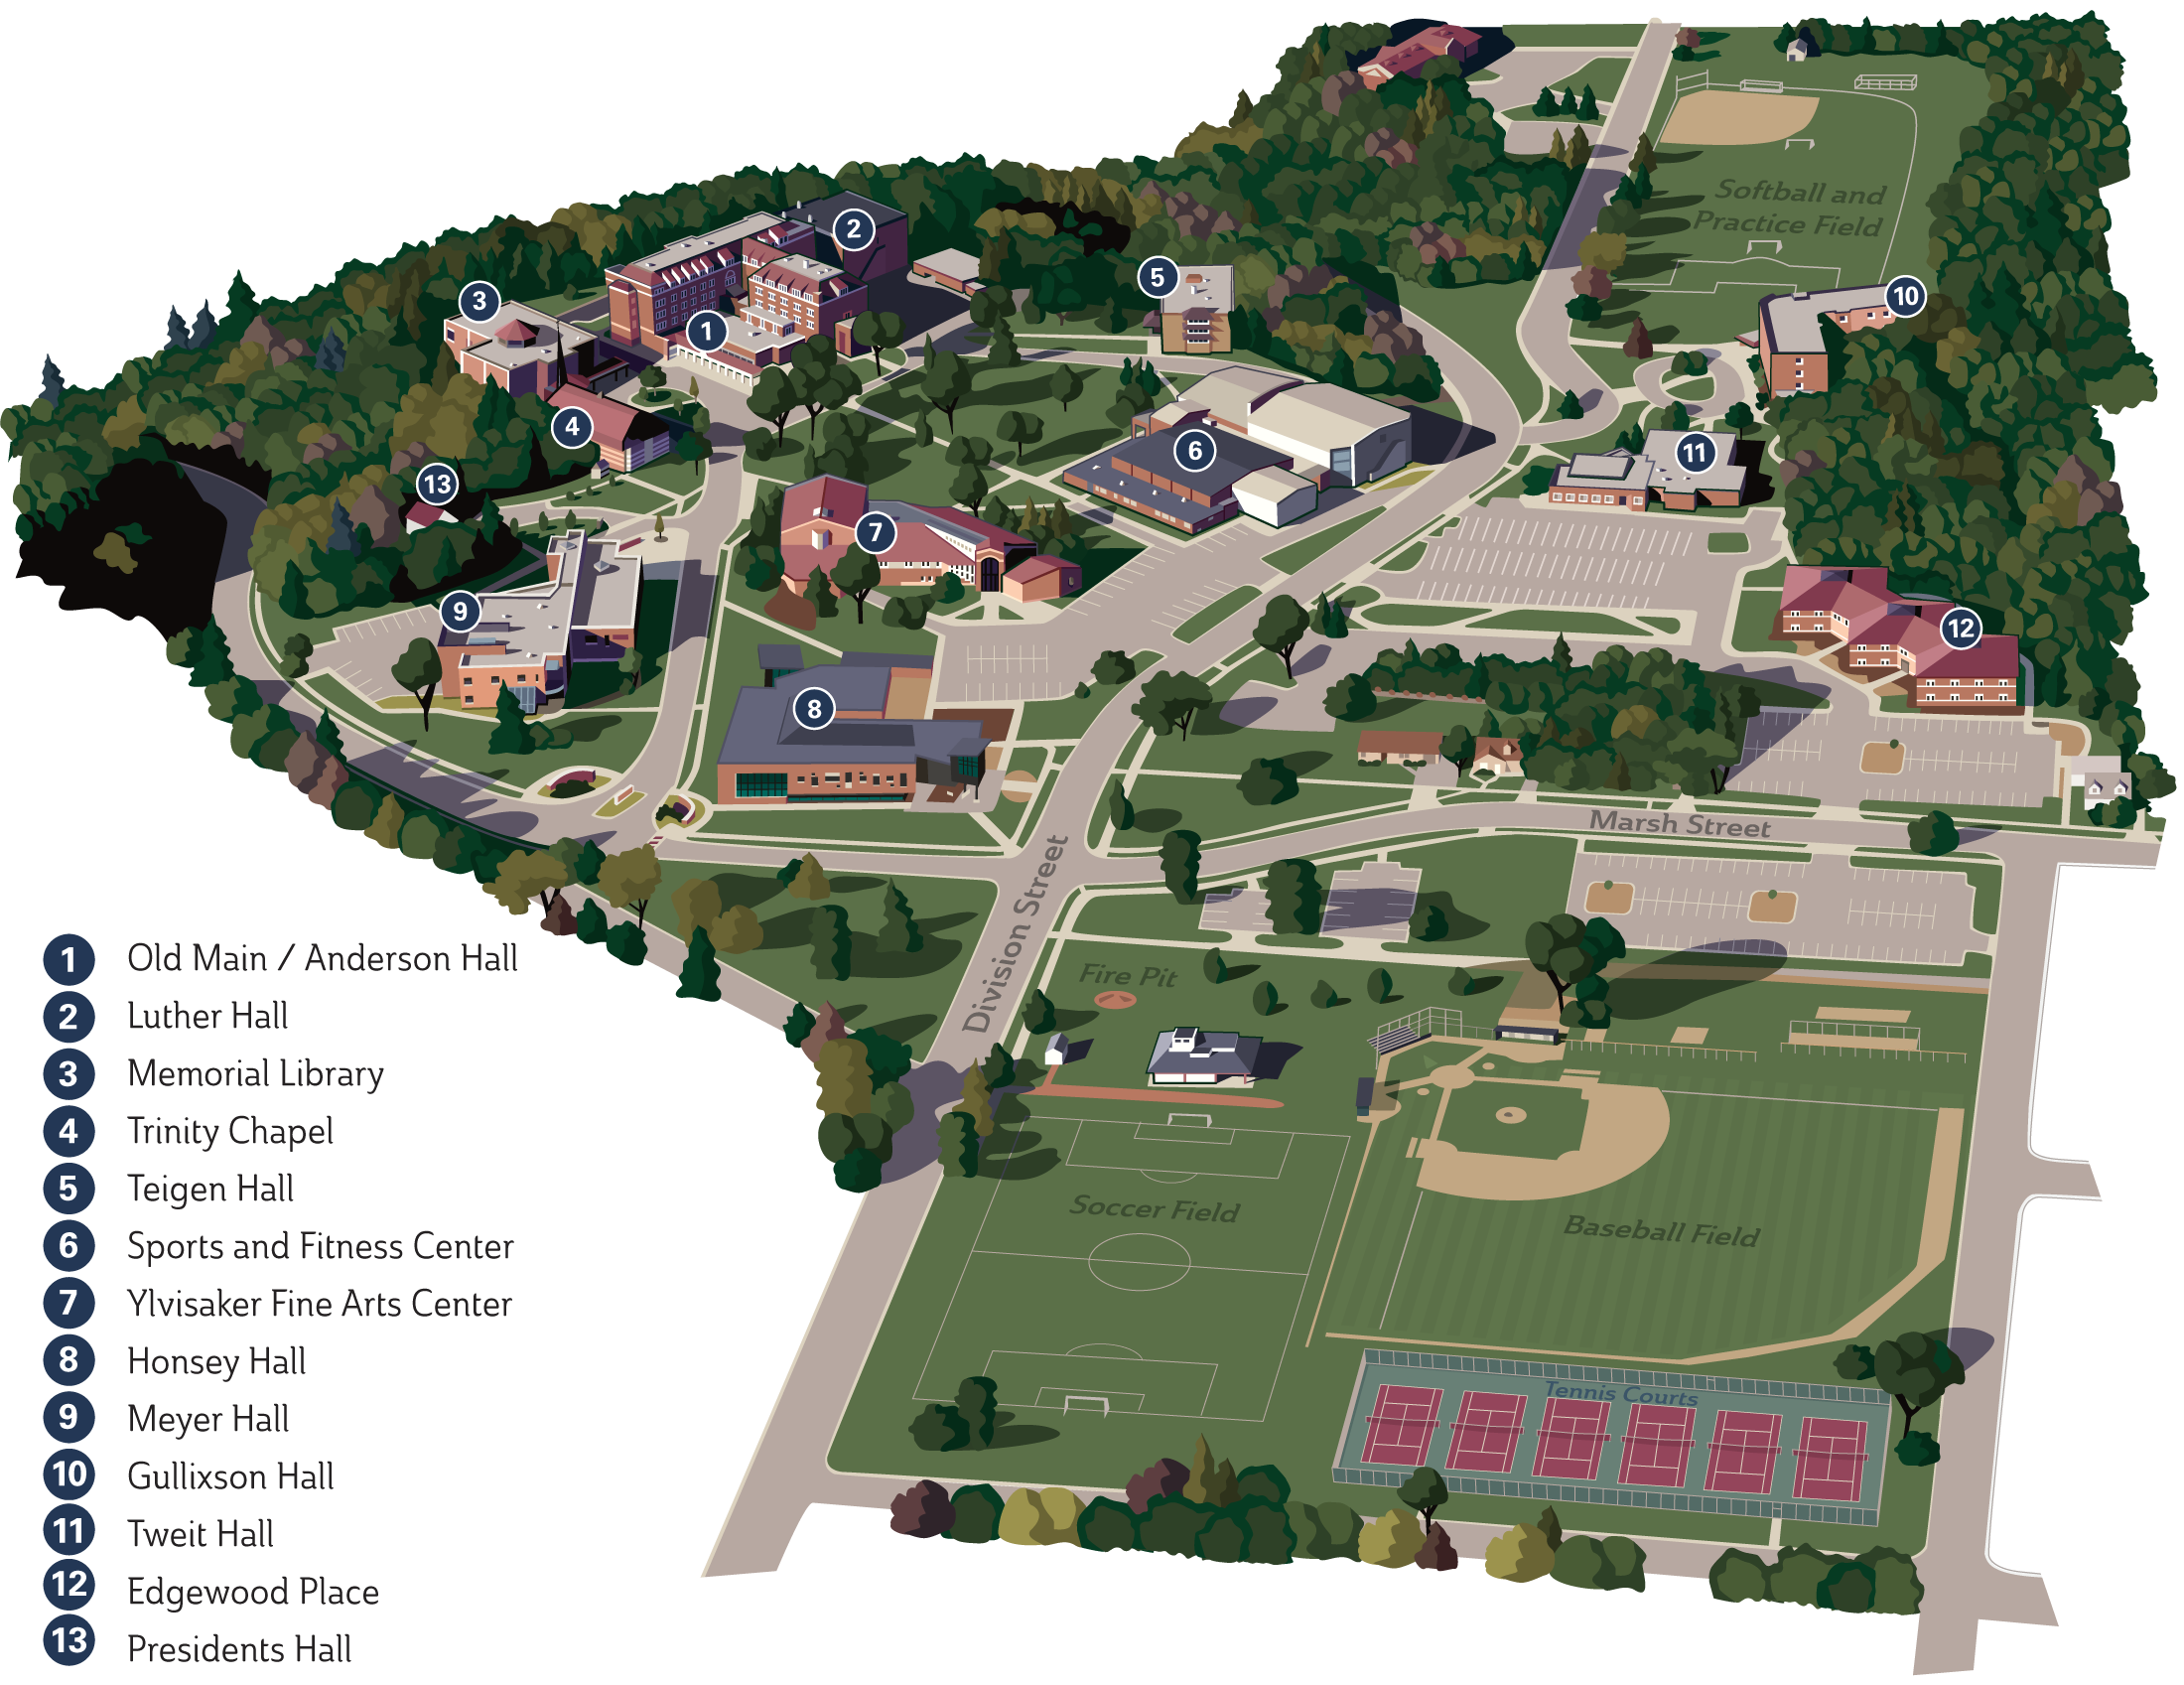 Youngstown State University Campus Map.Ccsu Campus Map Map Of Tourist Attractions In London Georgia